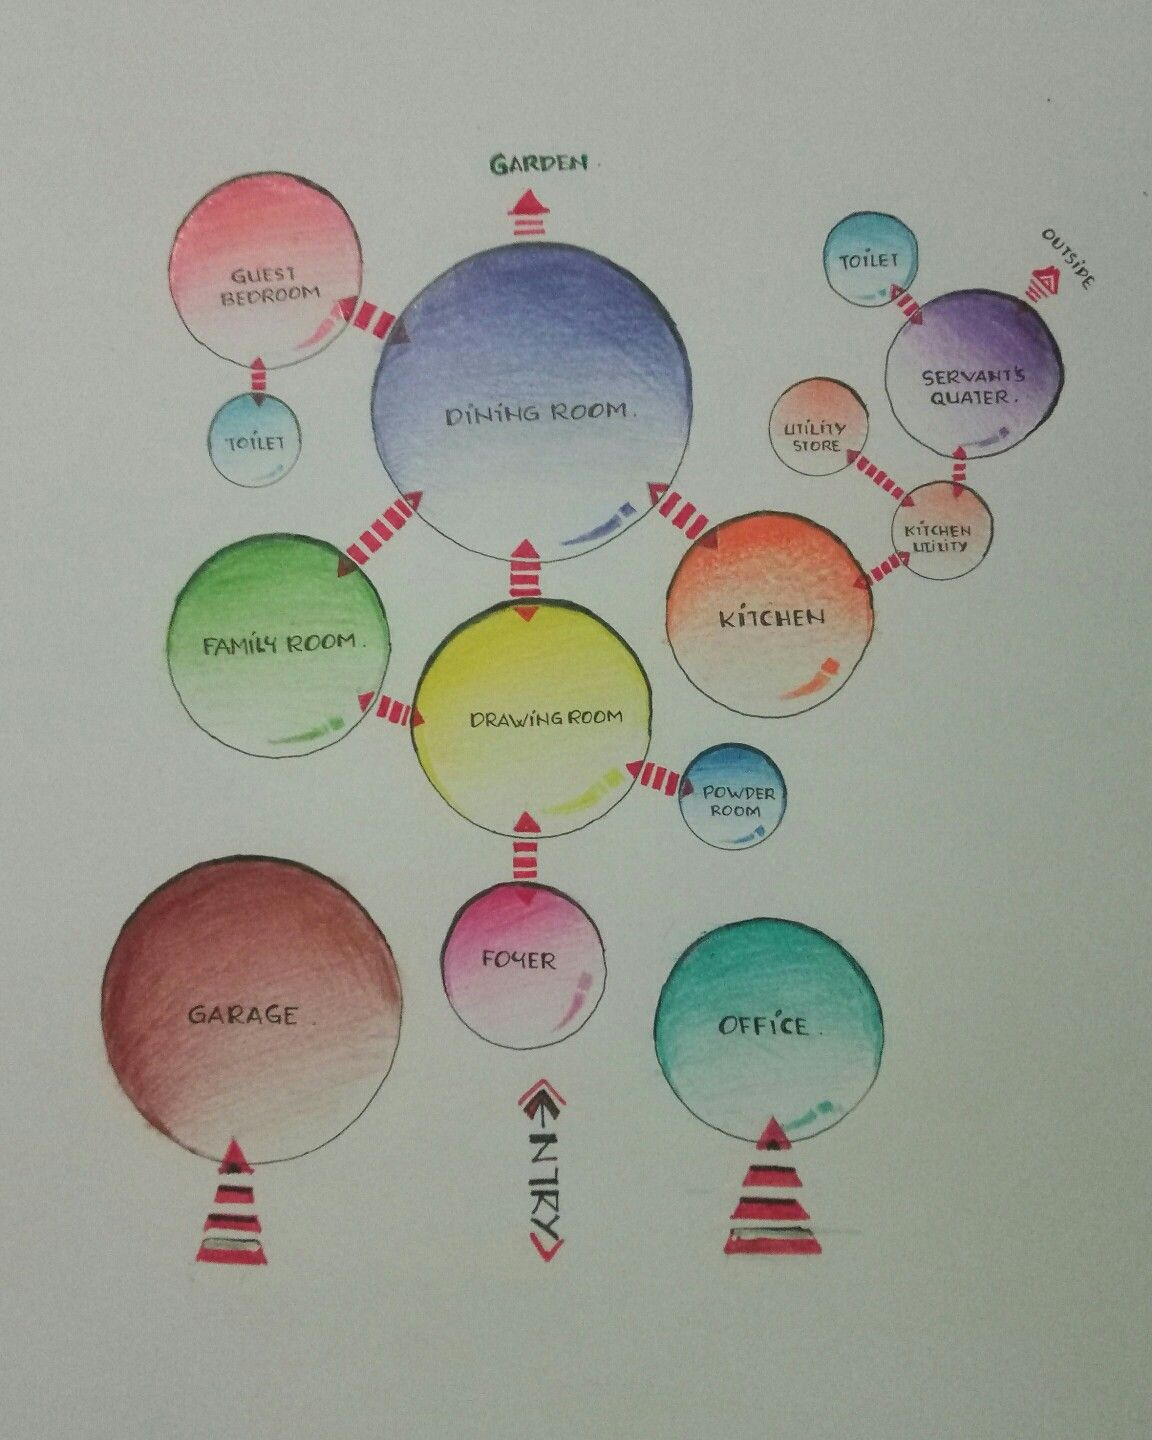 Simple Bubble Diagram For Writing 07 Dodge Caliber Headlight Wiring Pinterest And